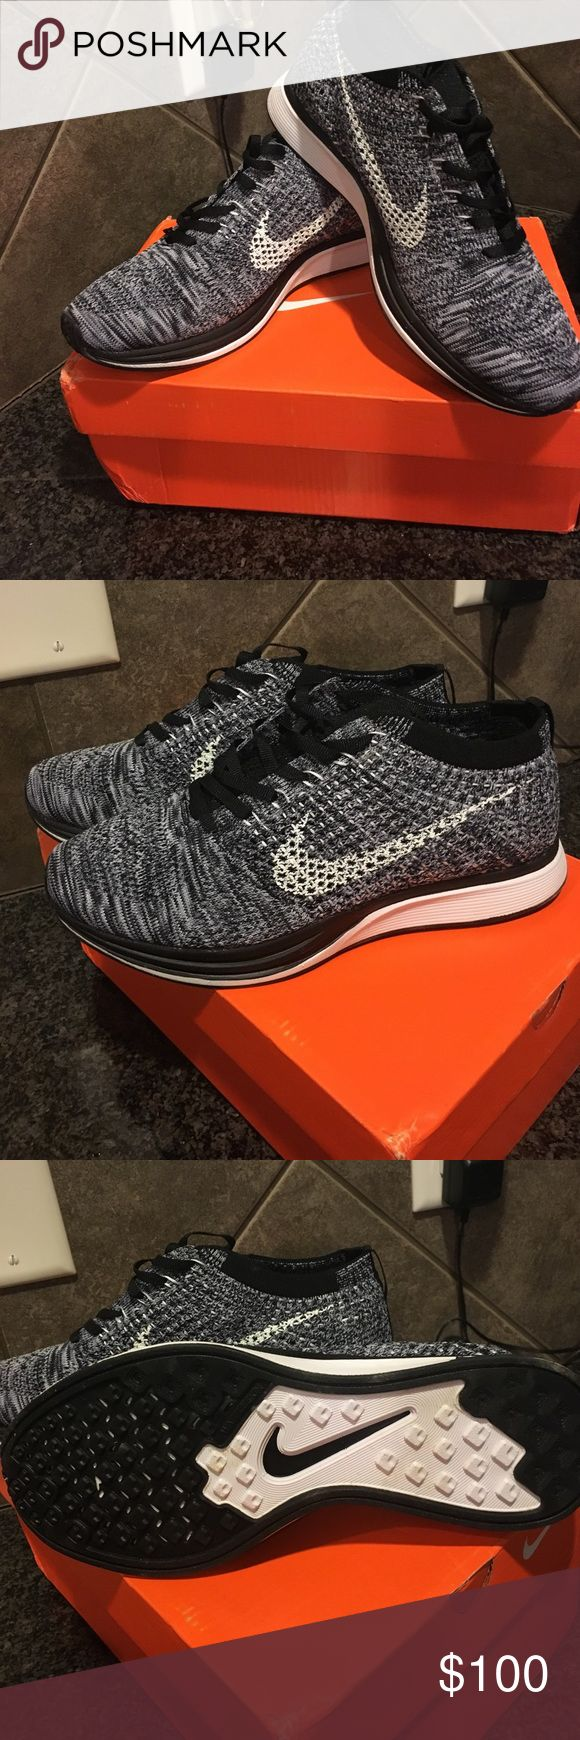 Brand new in box women Nike flyknit racer size 7 Brand new in box women Nike flyknit racer shoes . Size 7 . Dark grey with black Nike Shoes Sneakers